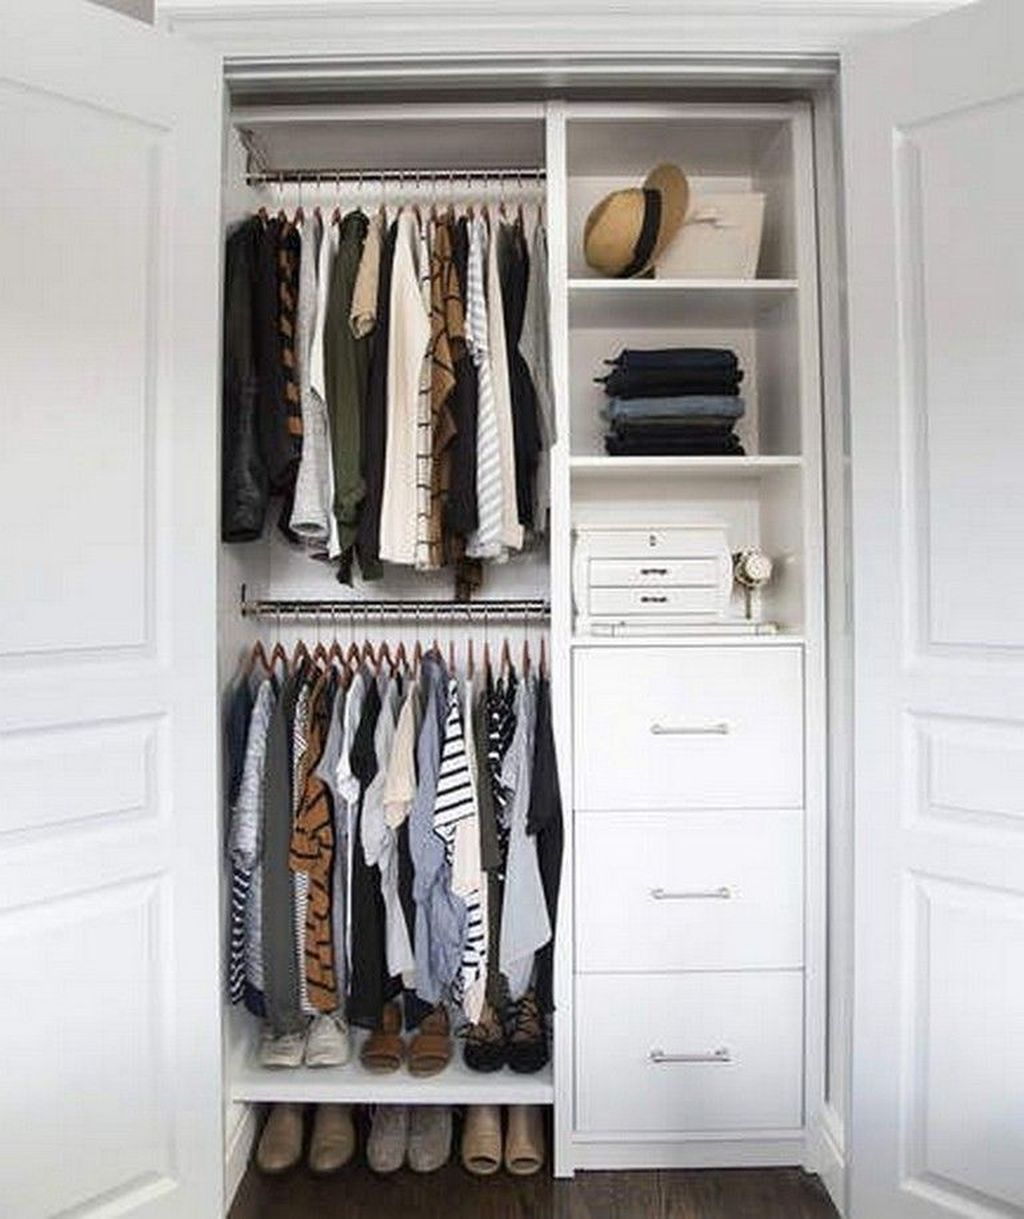 40 Best Ways To Makes Functional Small Closets Ideas Closet Renovation Closet Small Bedroom Small Closet Organization Bedroom